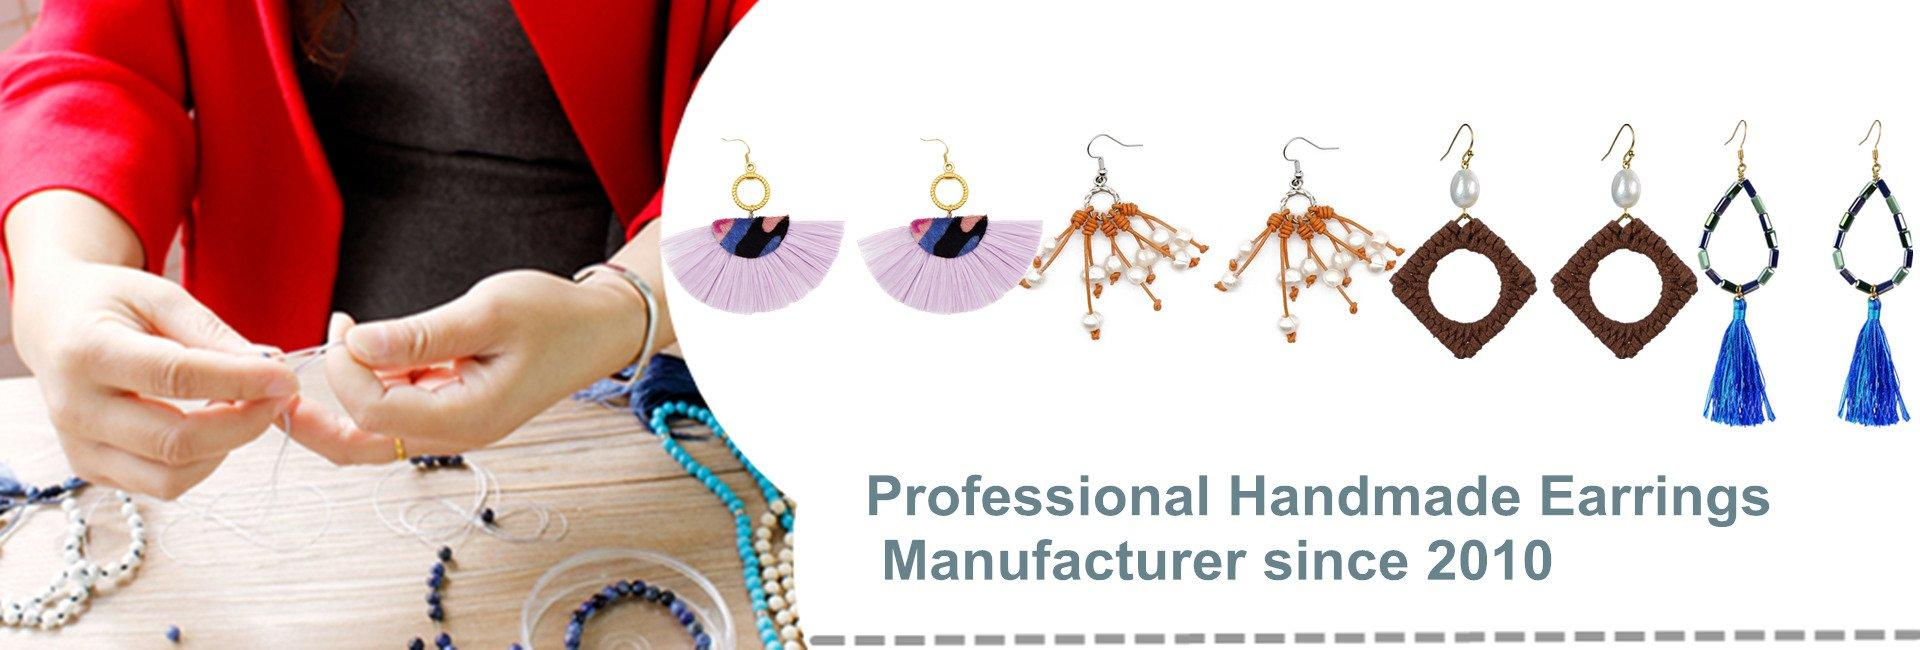 Handmade Earrings Manufacturer